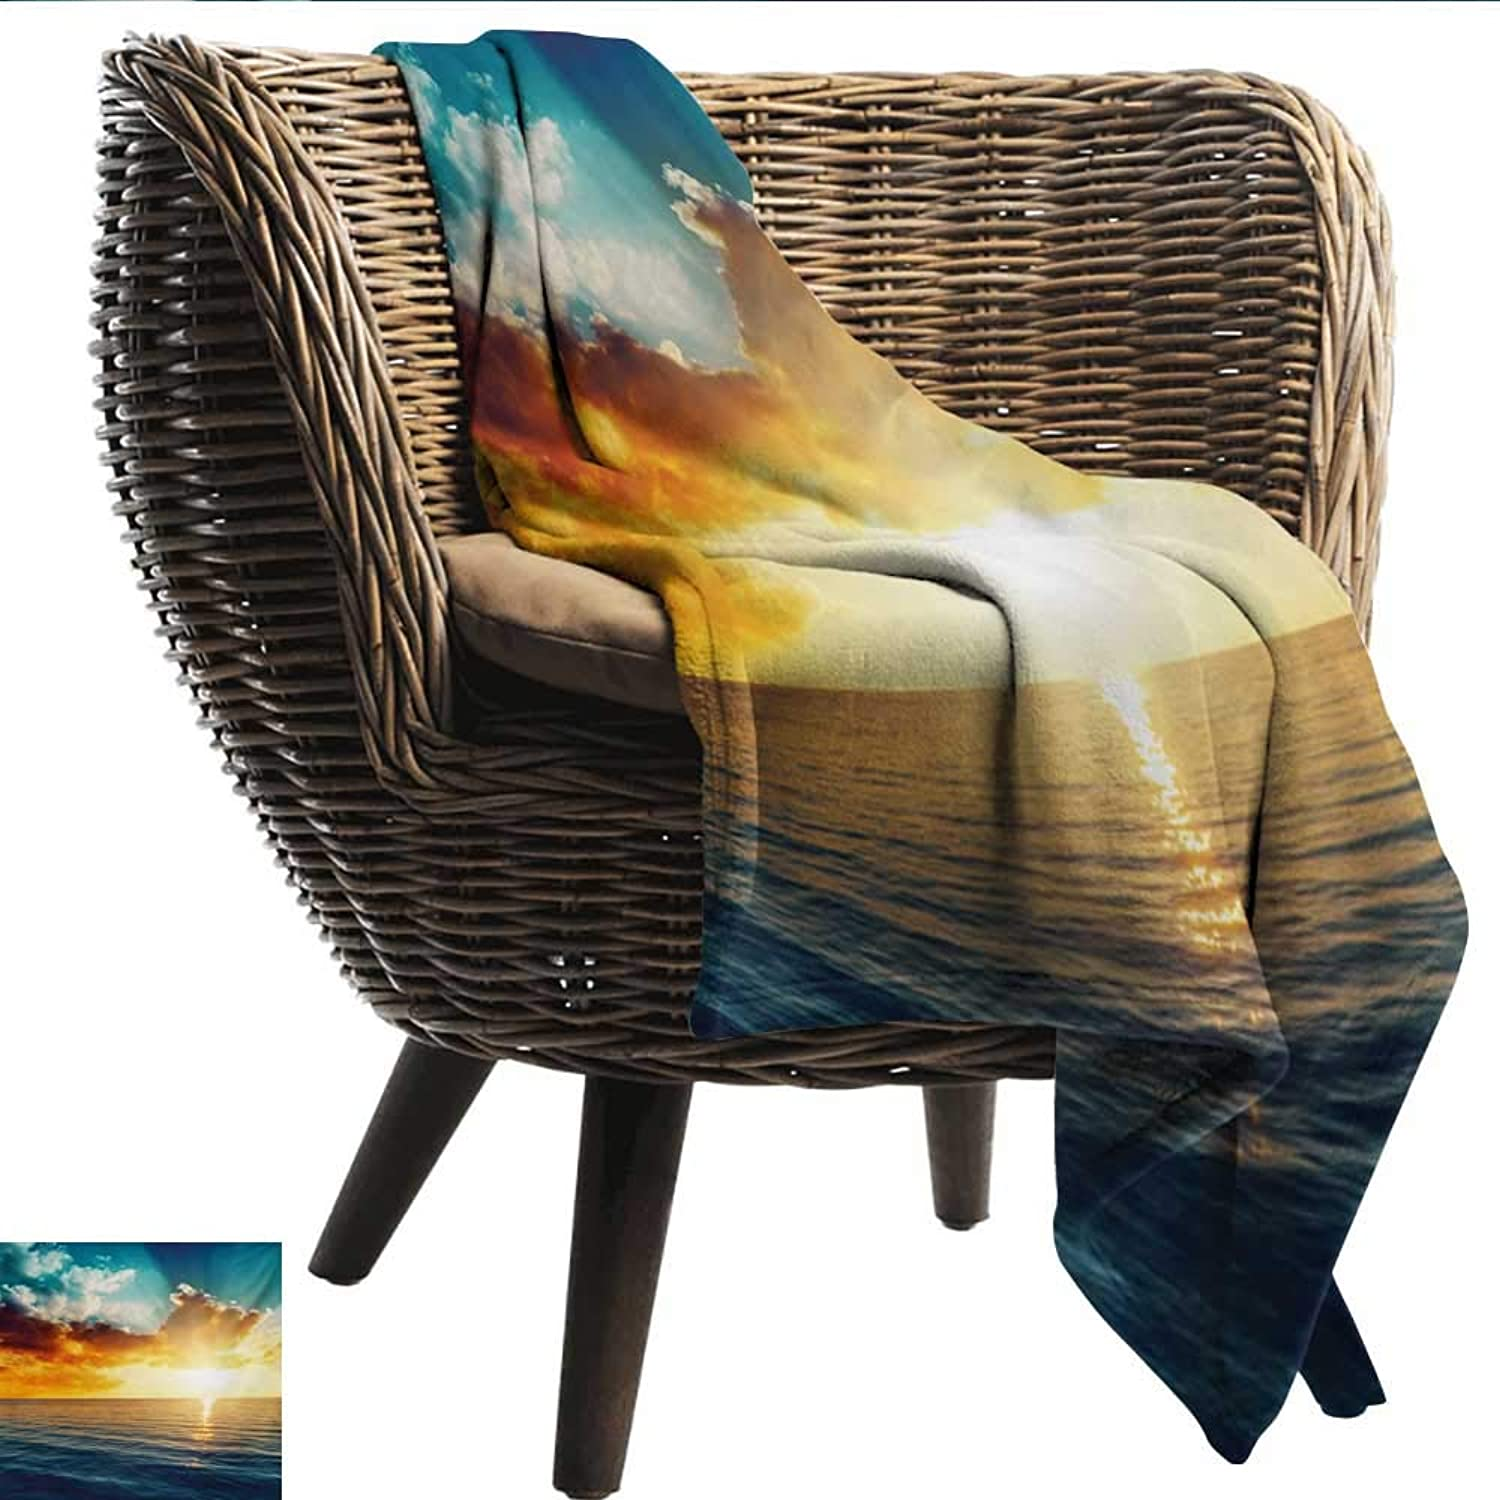 Anshesix Travel Throwing Blanket Ocean Majestic Sunset Over The Sea Scenic Idyllic Aquatic View Morning Picture Print Summer Quilt Comforter W60 xL51 Sofa,Picnic,Camping,Beach,Everyday use